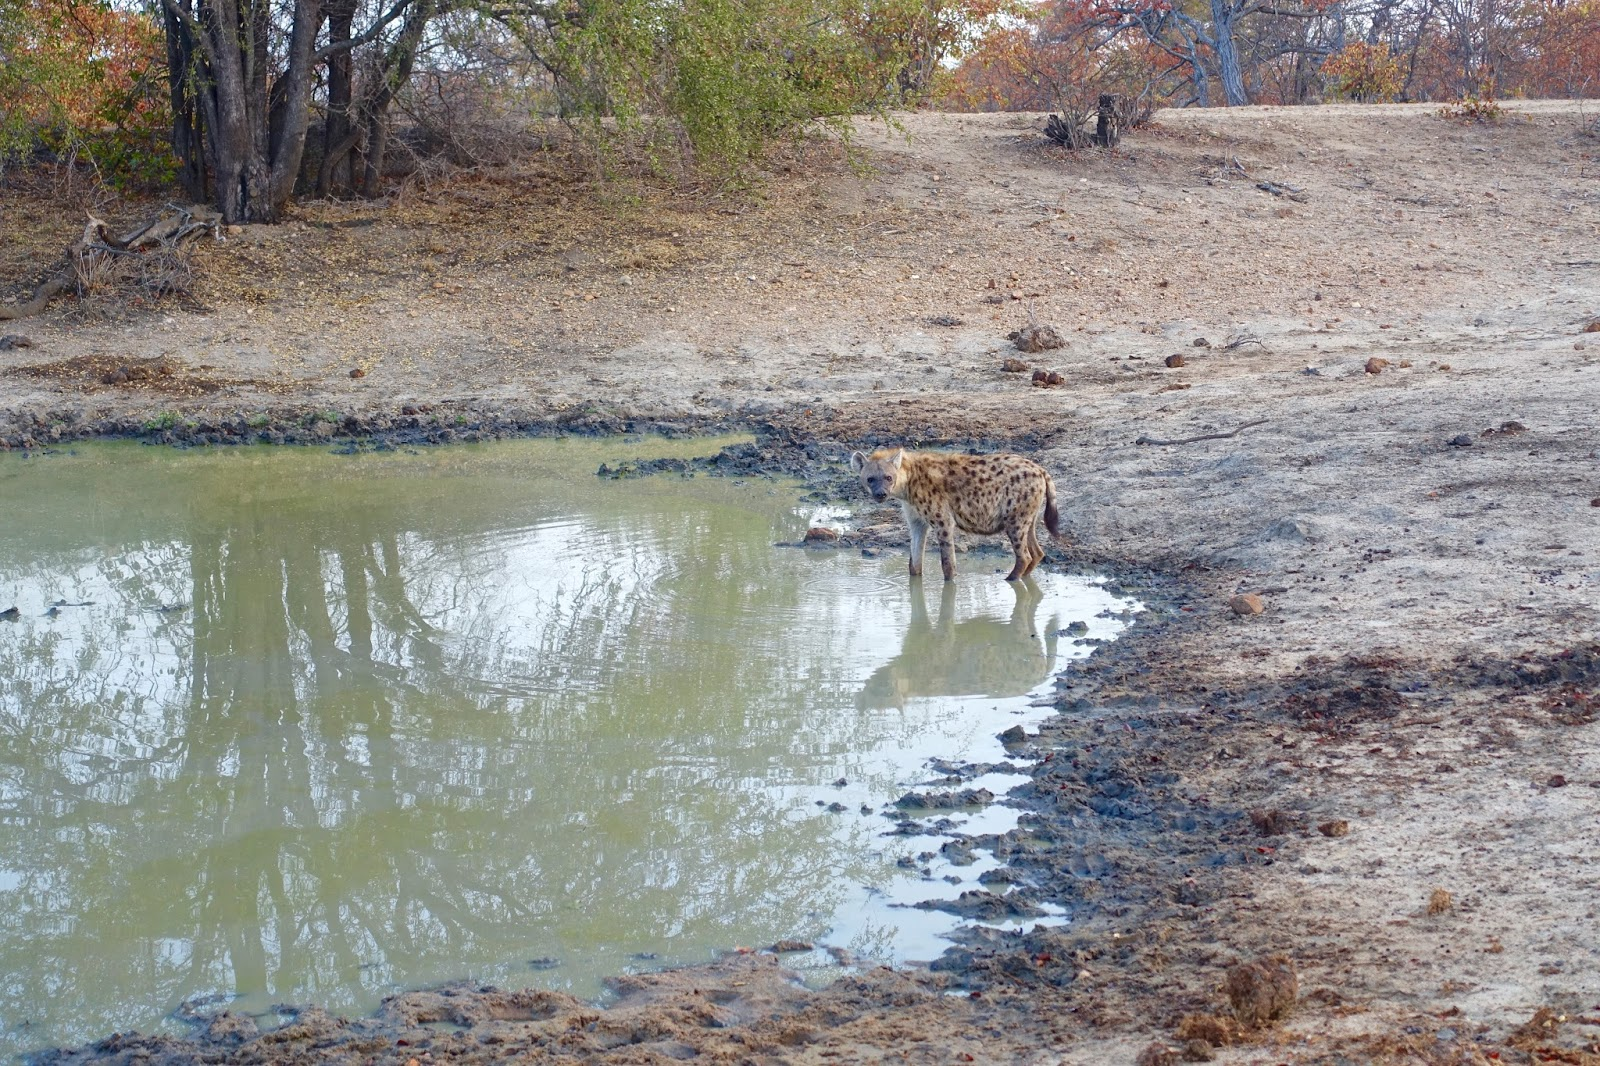 hyena at watering hole